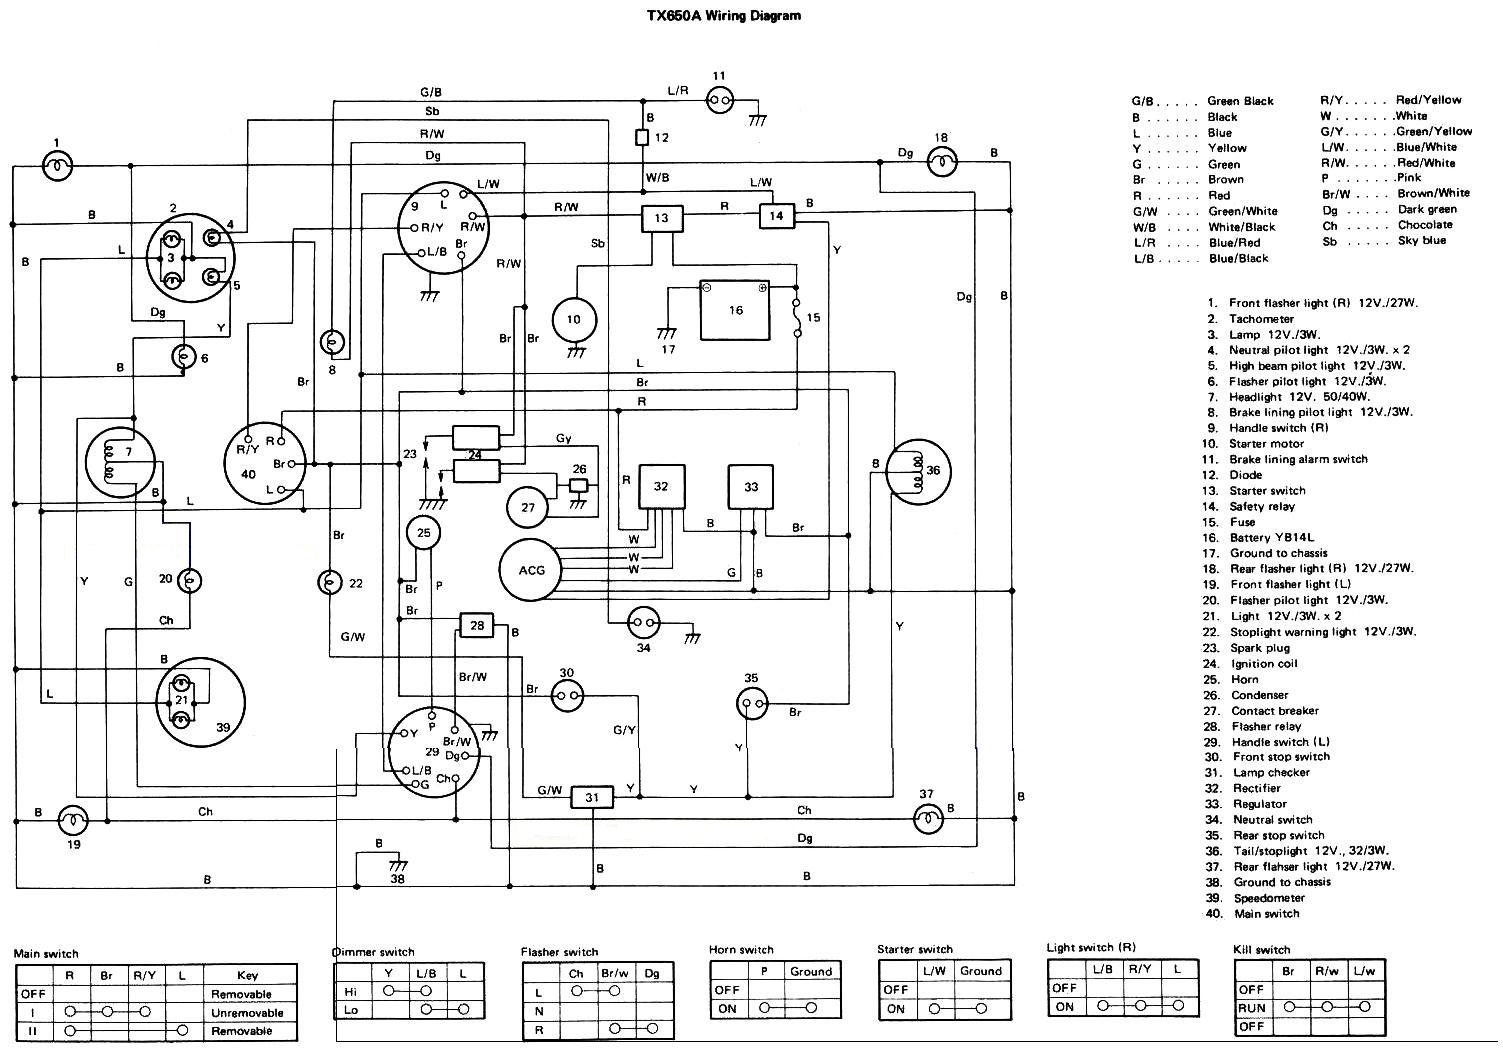 Cb750 Wiring Diagram moreover Cb750 Wiring moreover 2003 Honda Recon Diagrams further 1979 Honda Cbx Wiring Diagram as well Voltage Rectifier Td3215757. on cb750 regulator rectifier wiring diagram